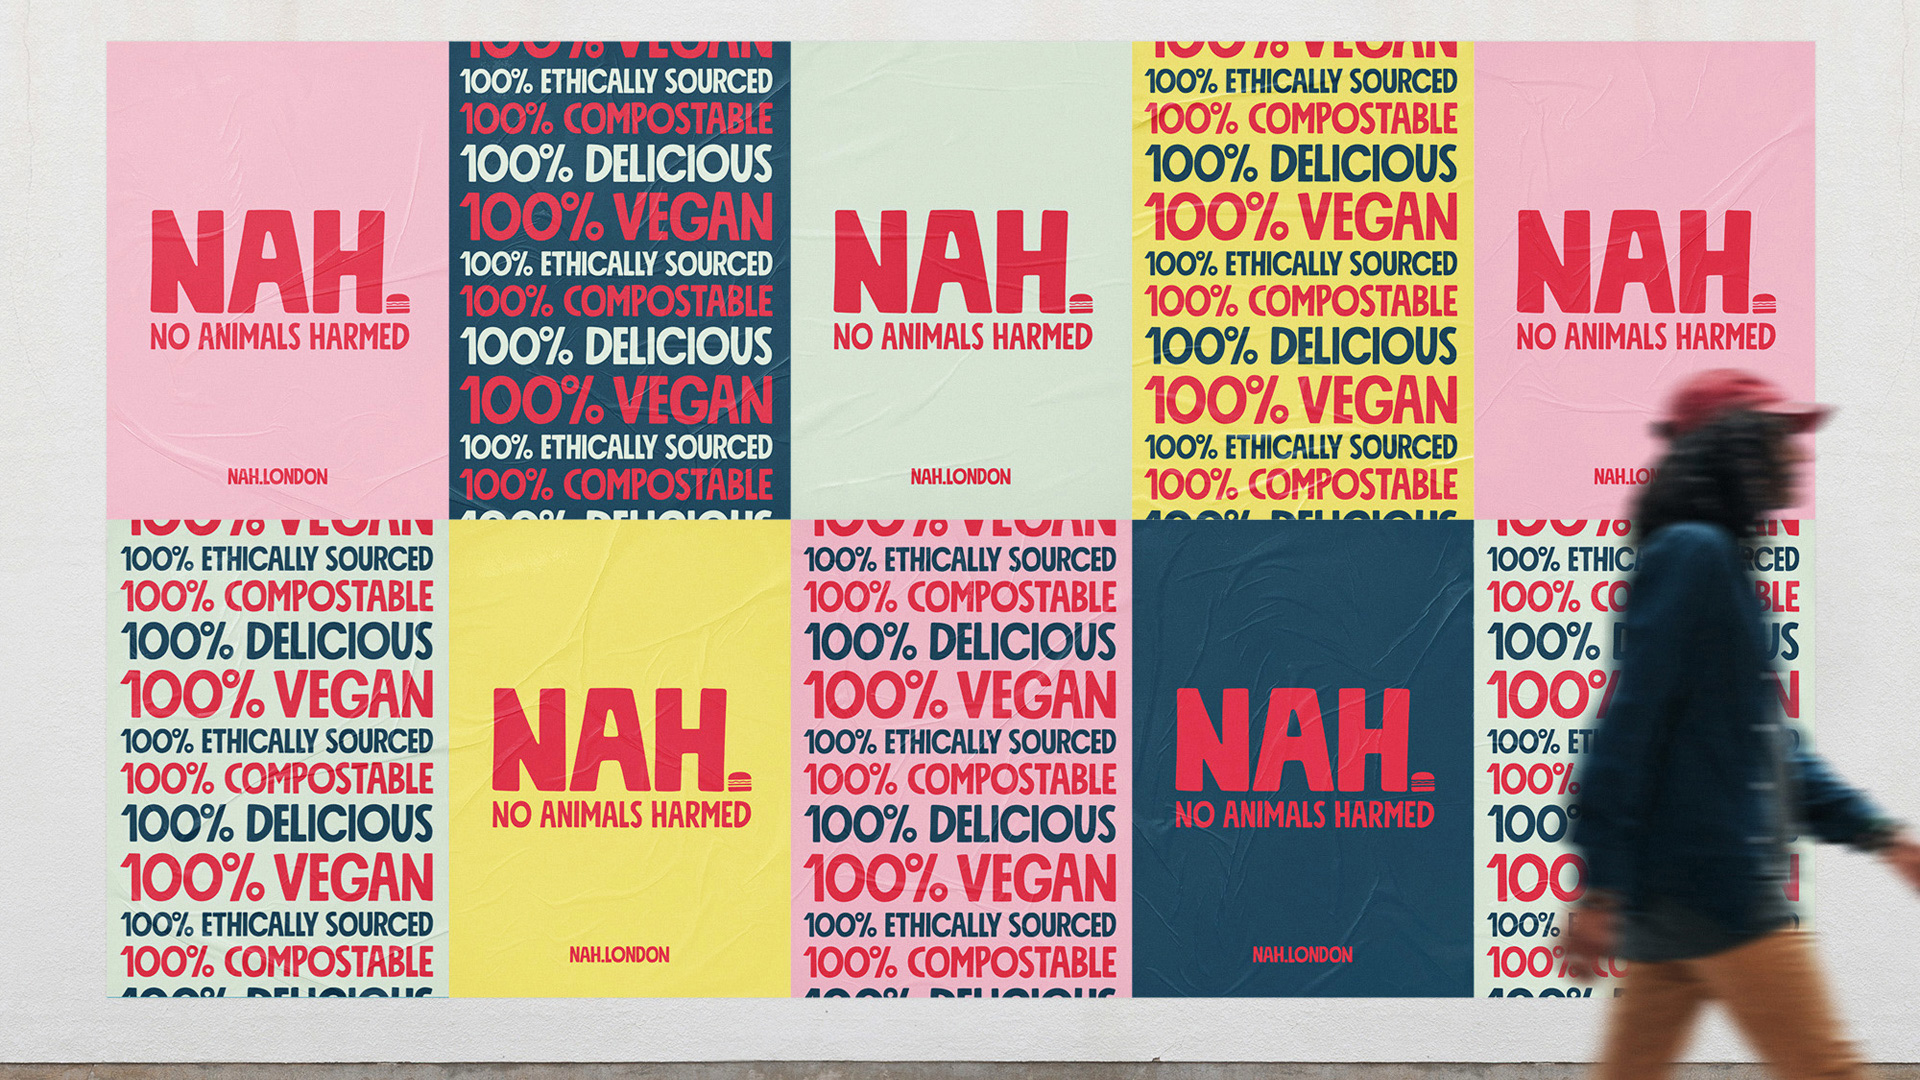 Ross Hammond Creates Branding for NAH. (No Animals Harmed) Takeaway Based in London Exclusive to UberEat